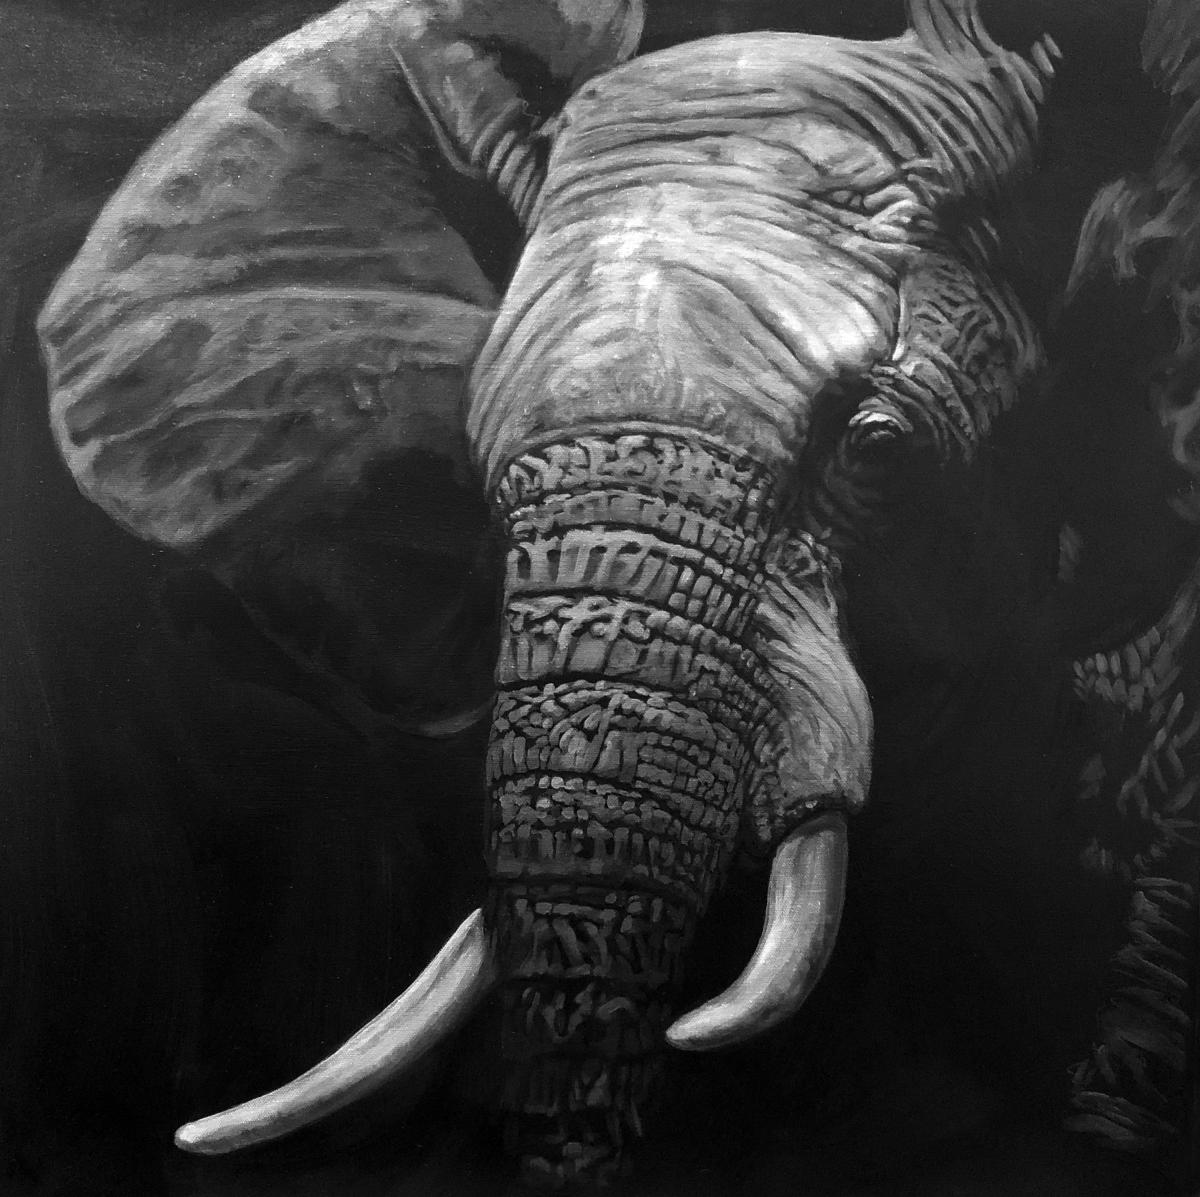 Imposing Presence | Wallhanging by Deborah LaFogg Docherty | Artists for Conservation 2020